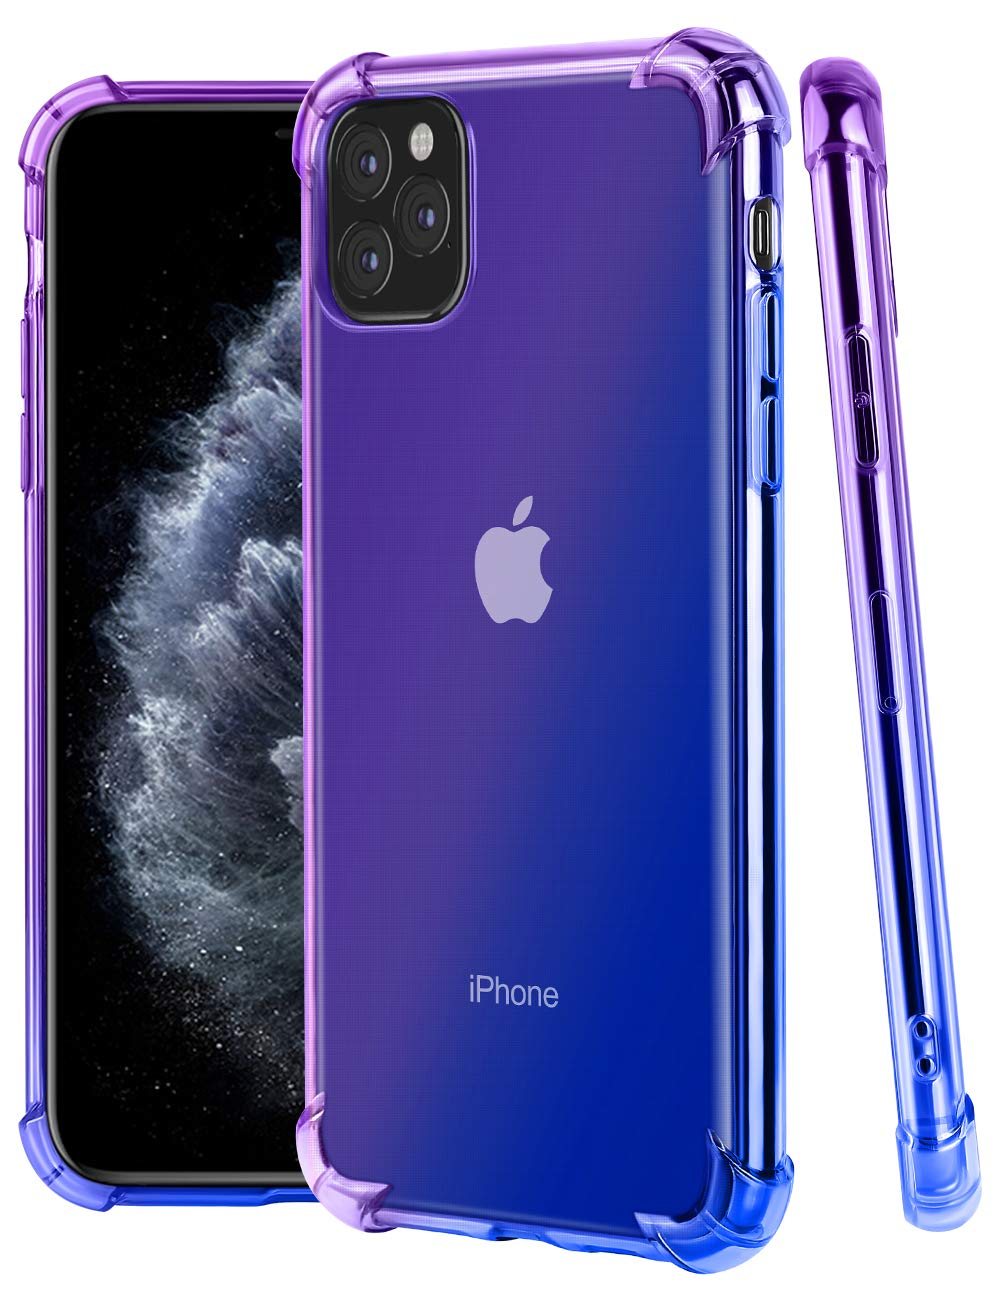 Jelanry iPhone 11 Pro Max Case, iPhone 11 Pro Max Gradient Color Clear Case Ultra Thin Shock Drop Proof Protective Cover Scratch-Resistant Soft TPU Bumper for iPhone 11 Pro Max 6.5inch Purple Blue